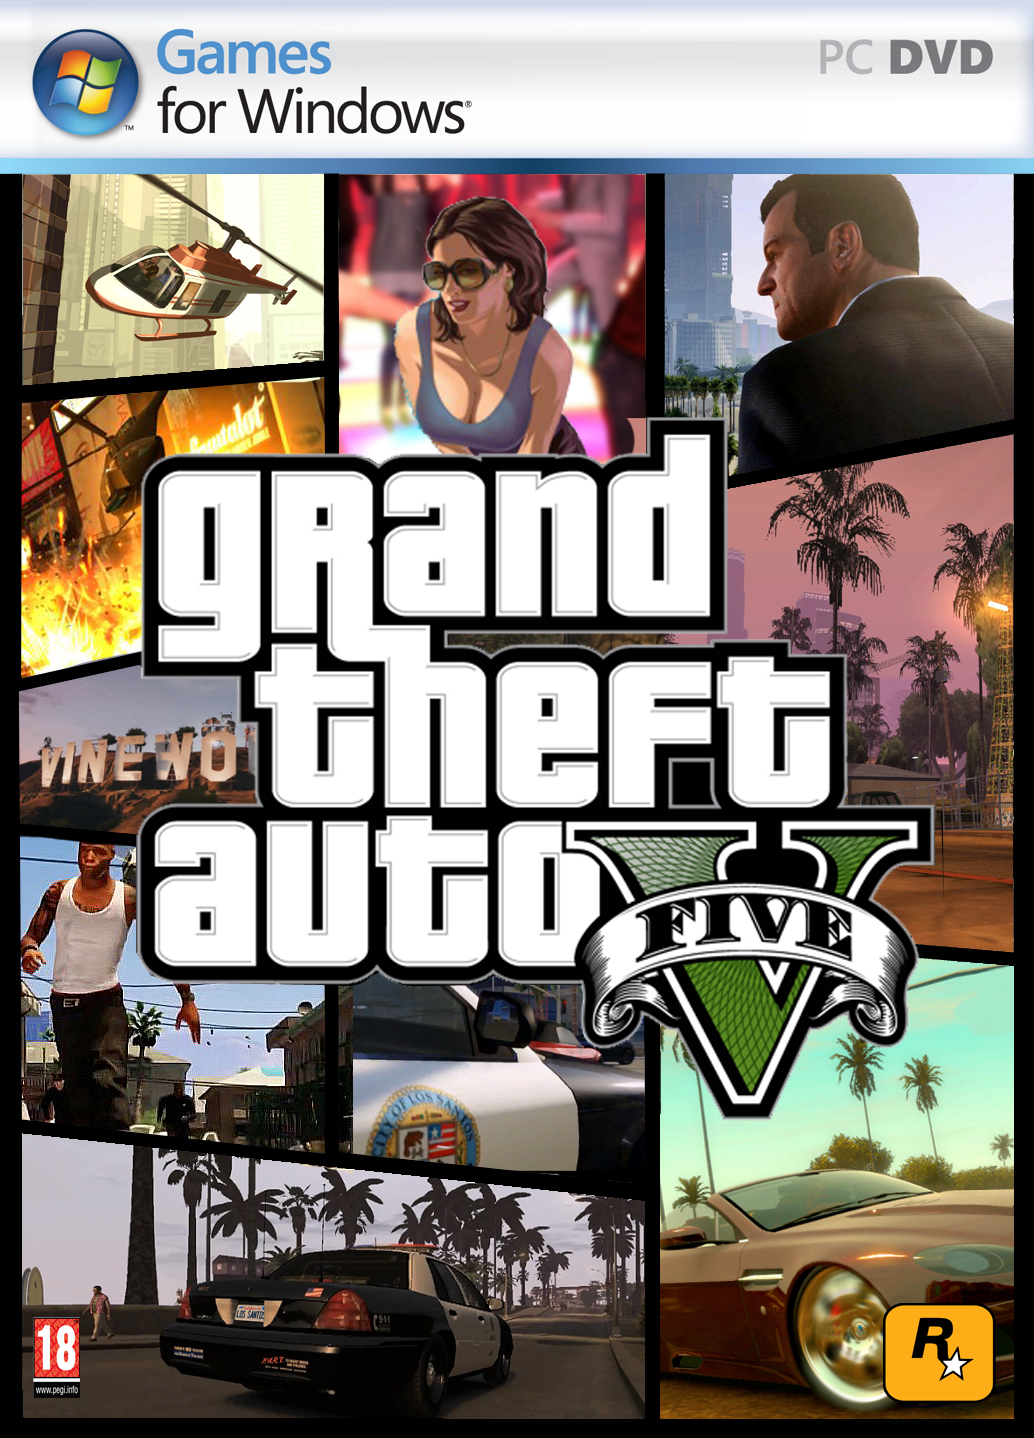 gta 5 for pc size